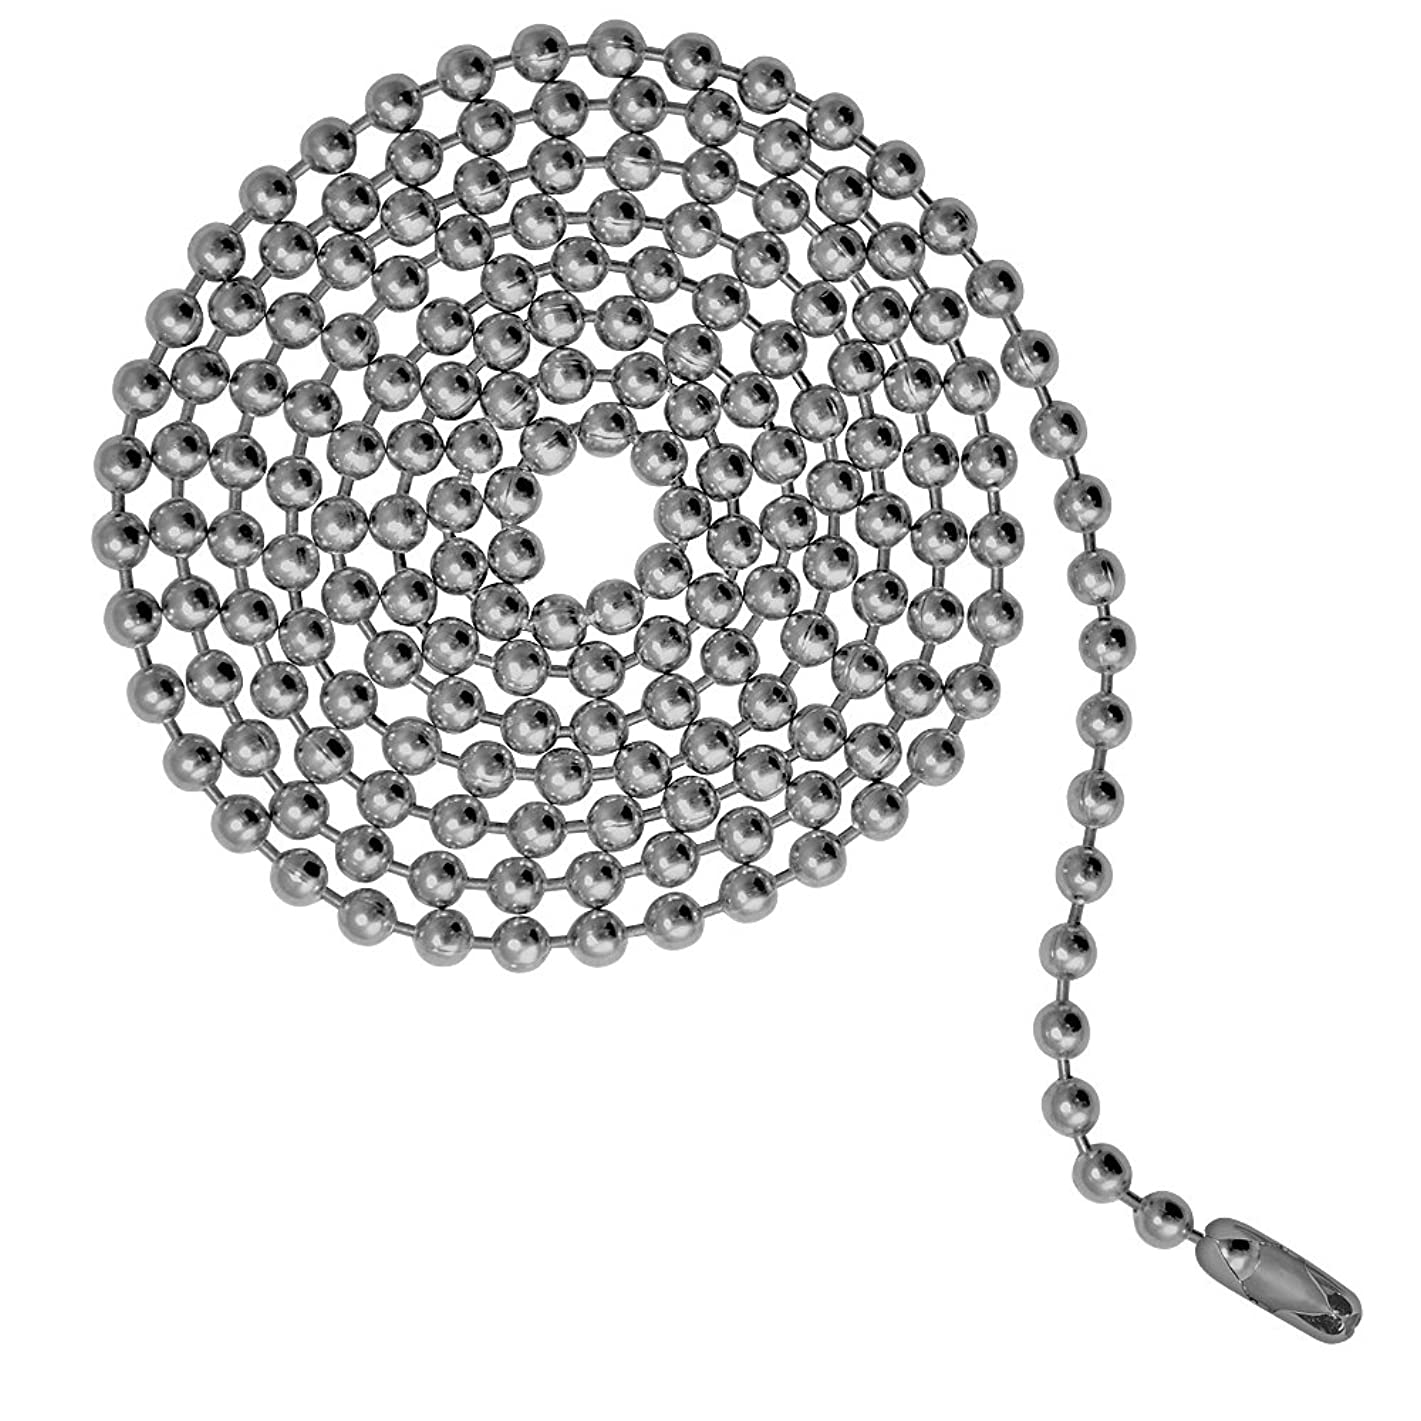 Ball Chain 3 Foot Length, Number 6 Size, Stainless Steel, with Matching Connectors (3 Pack)